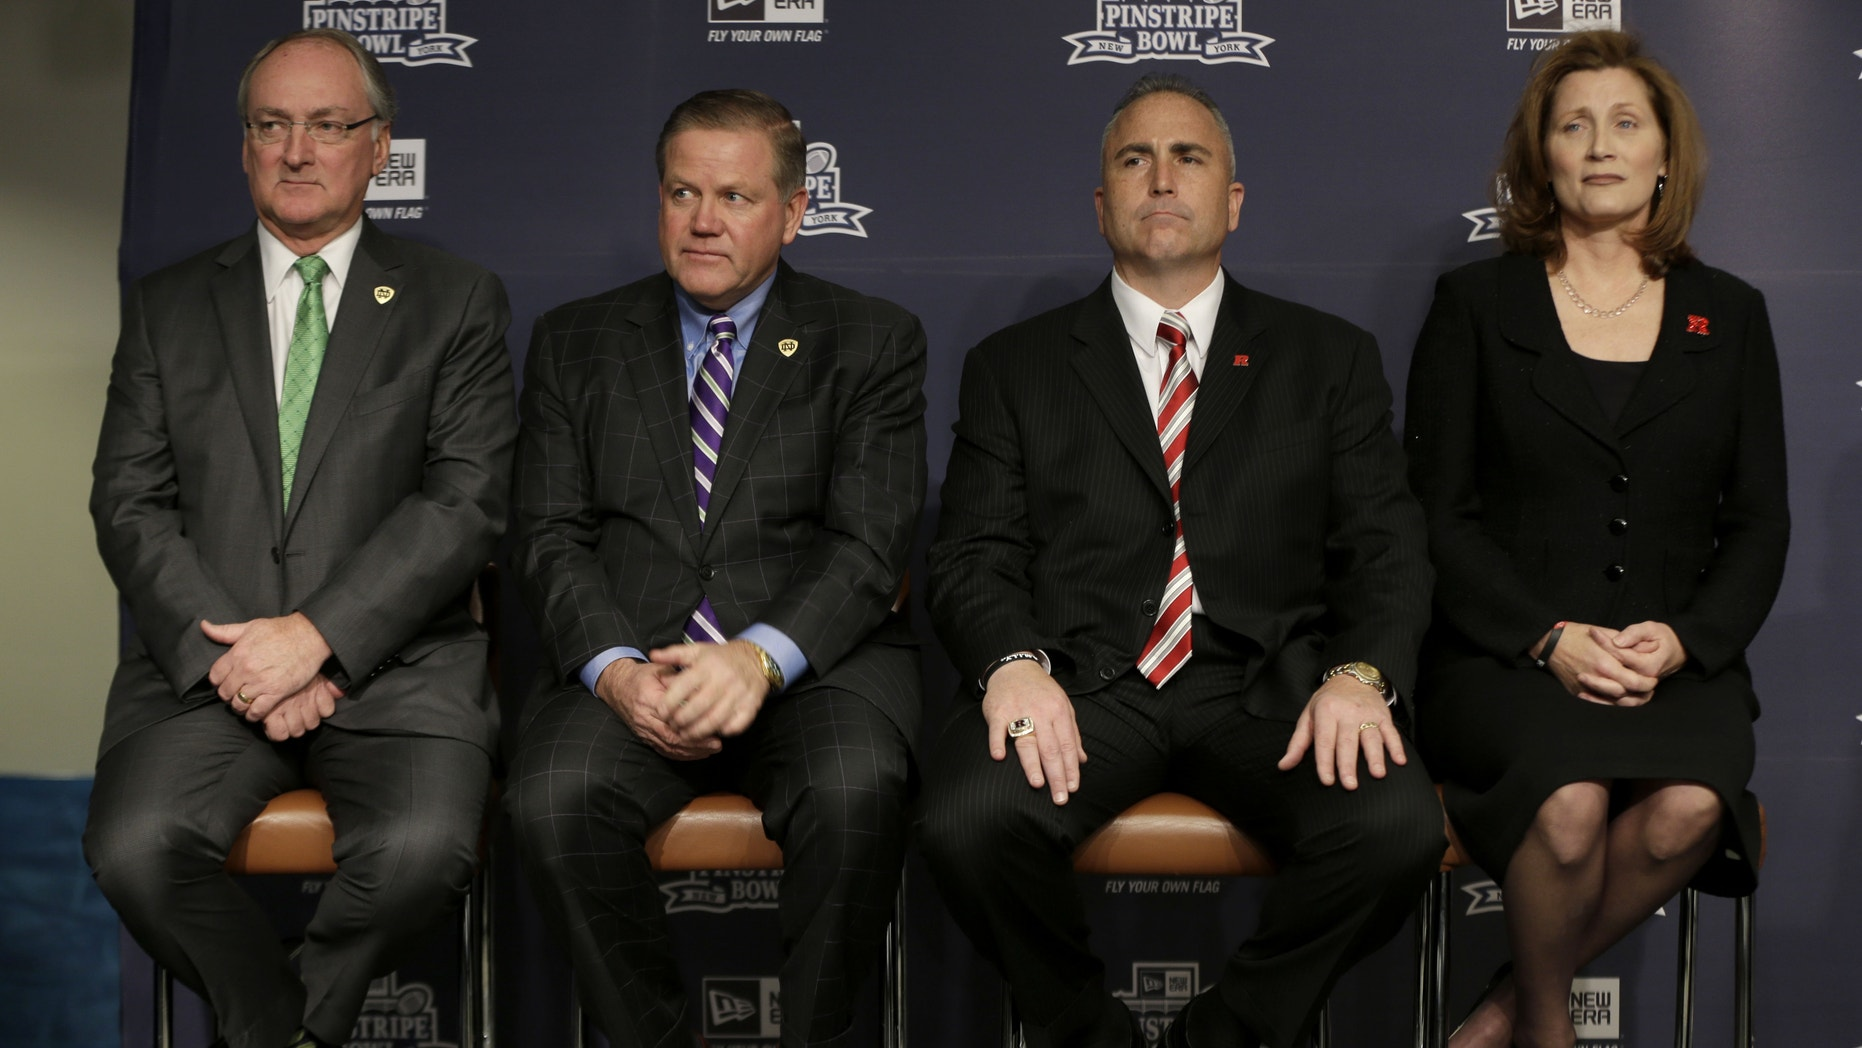 Notre Dame athletic director Jack Swarbrick, left, and head football coach Brian Kelly, second from left, along with Rutgers athletic director Julie Hermann, right, and head football coach Kyle Flood, attend an NCAA college football news conference in New York, Tuesday, Dec. 10, 2013. Rutgers and Notre Dame will face off at the Pinstripe Bowl at Yankee Stadium on Saturday, Dec. 28, 2013. (AP Photo/Seth Wenig)